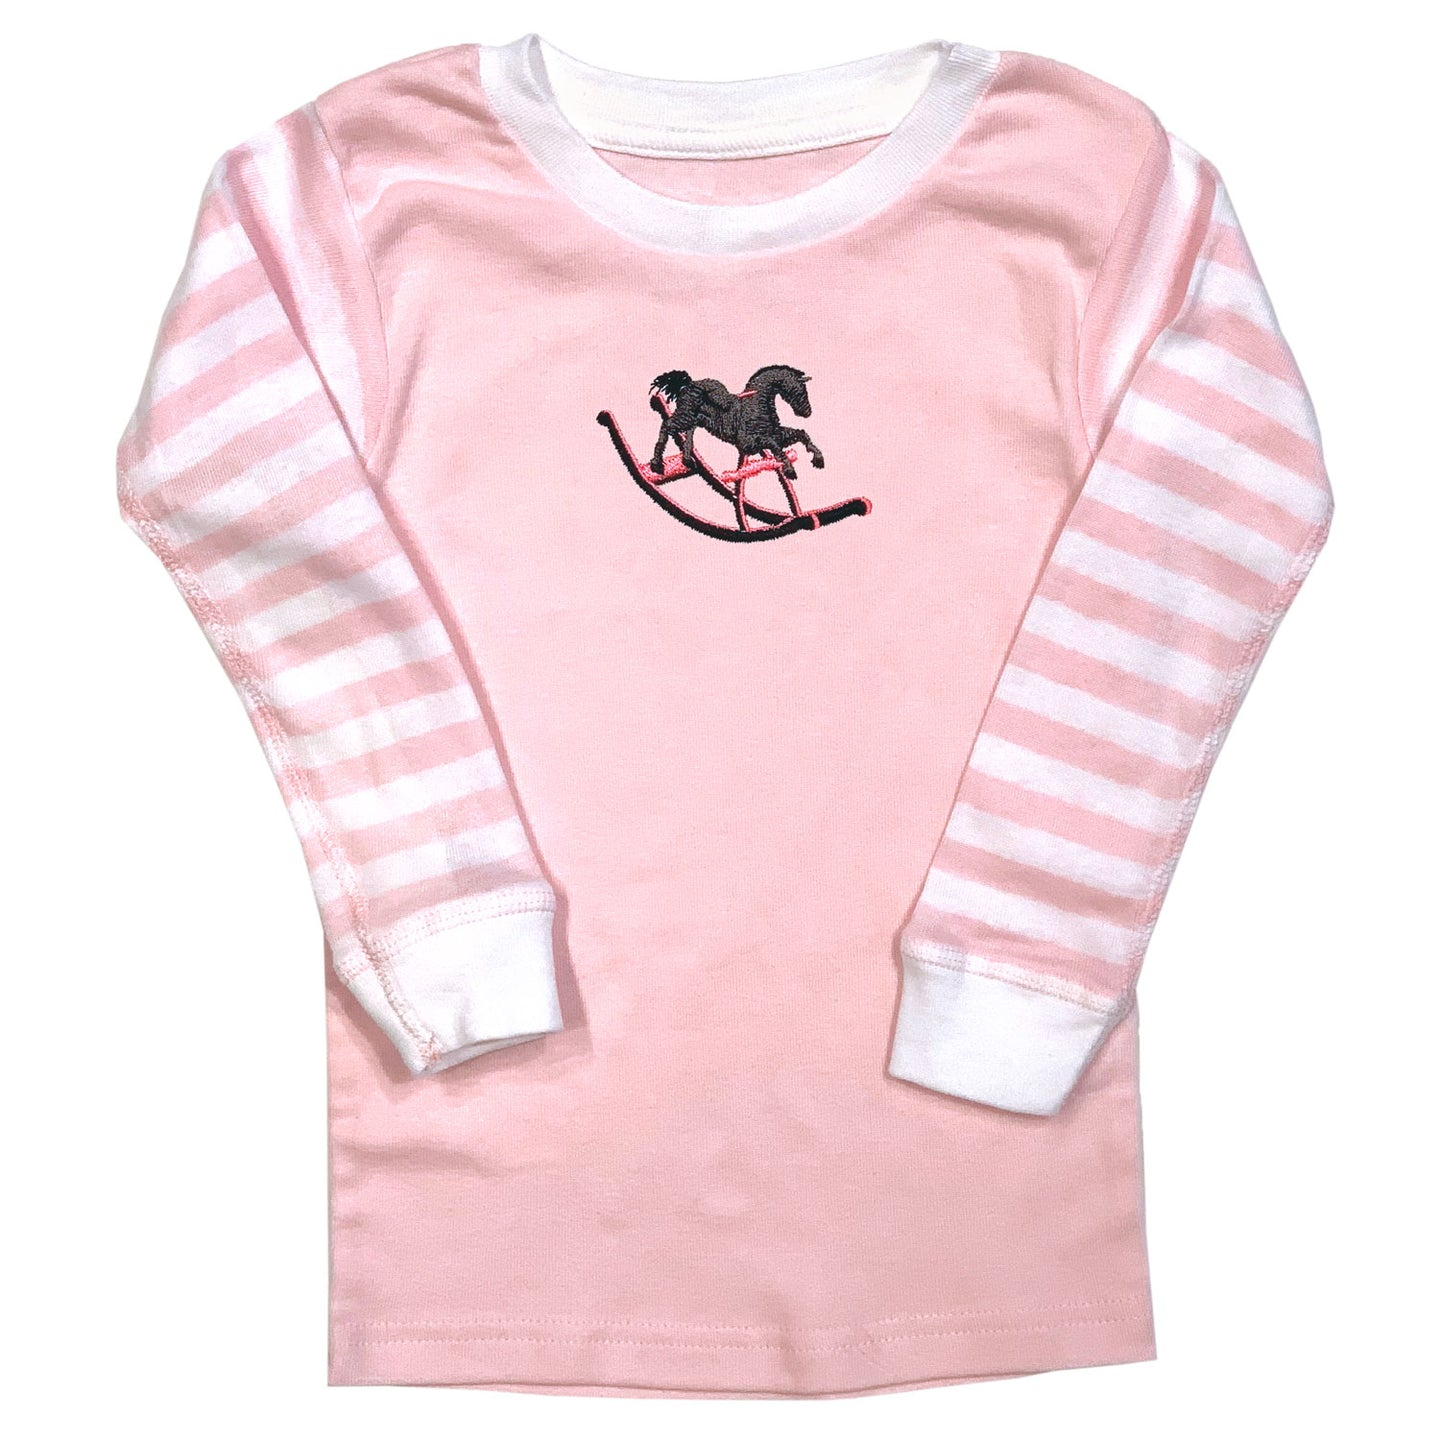 Rocking Horse Toddler PJ Top T233